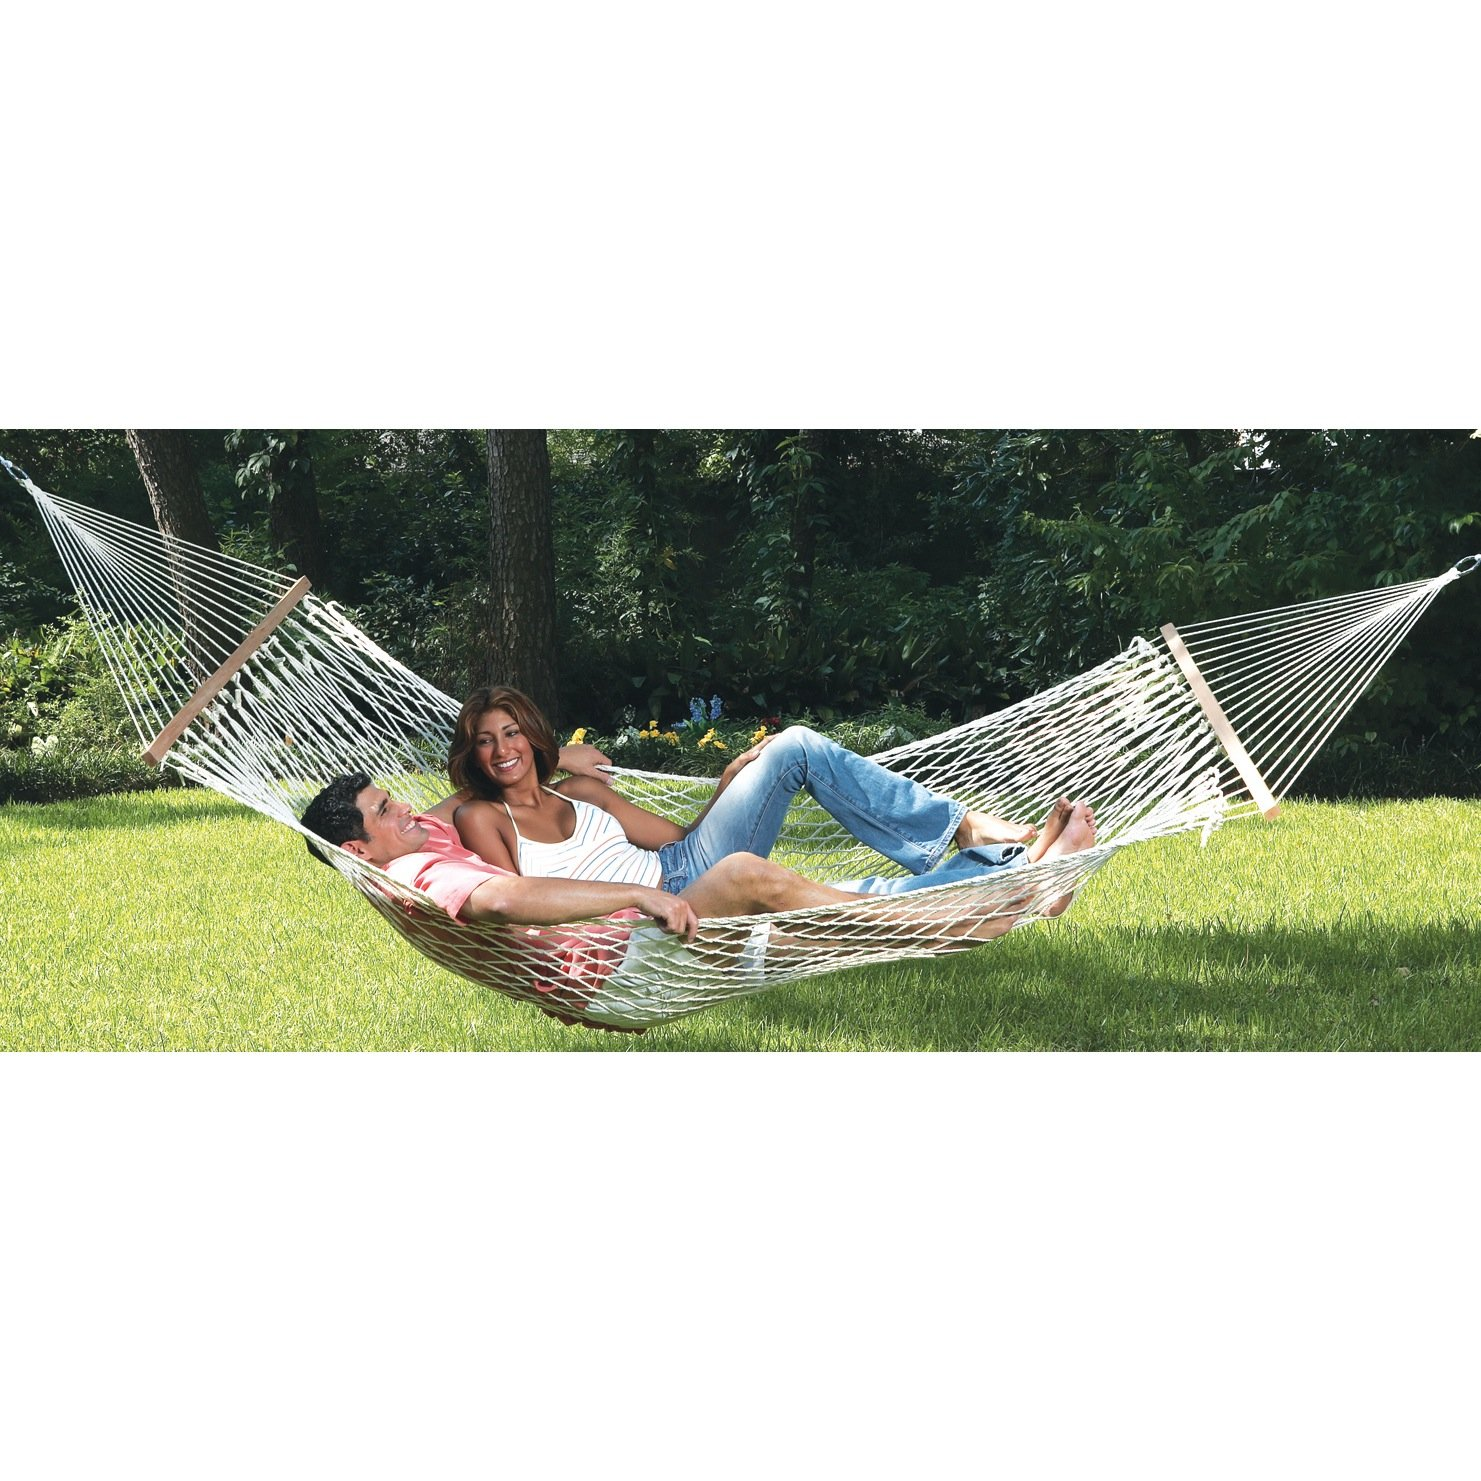 Hammock 2 Person Double Size Cotton Rope Bed Heavy Duty